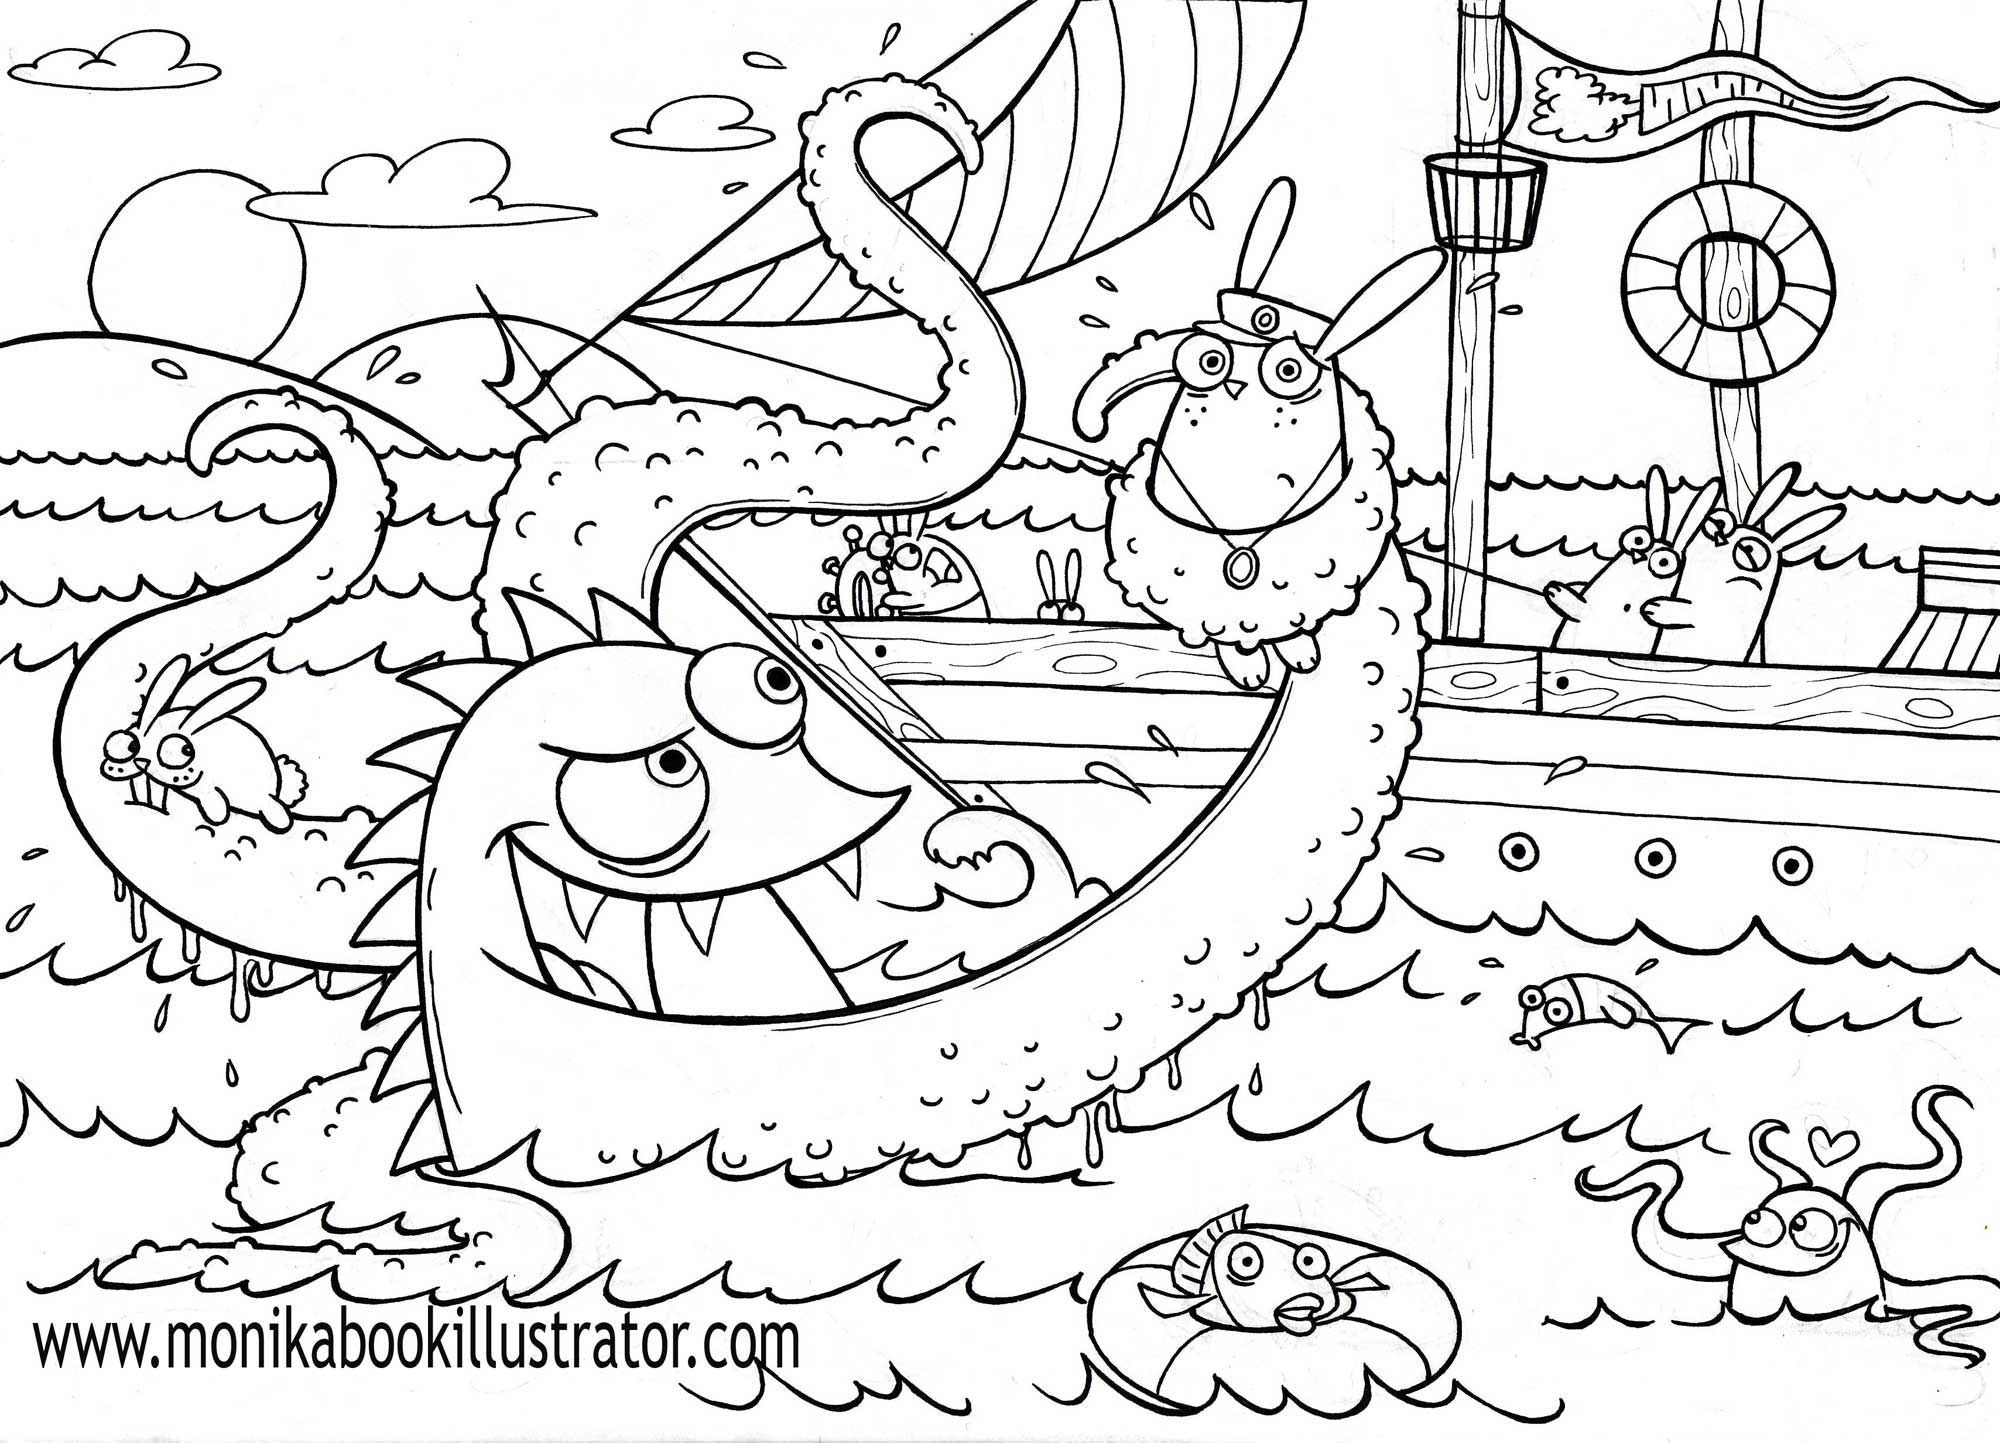 sea monster coloring pages - Monster Coloring Pages